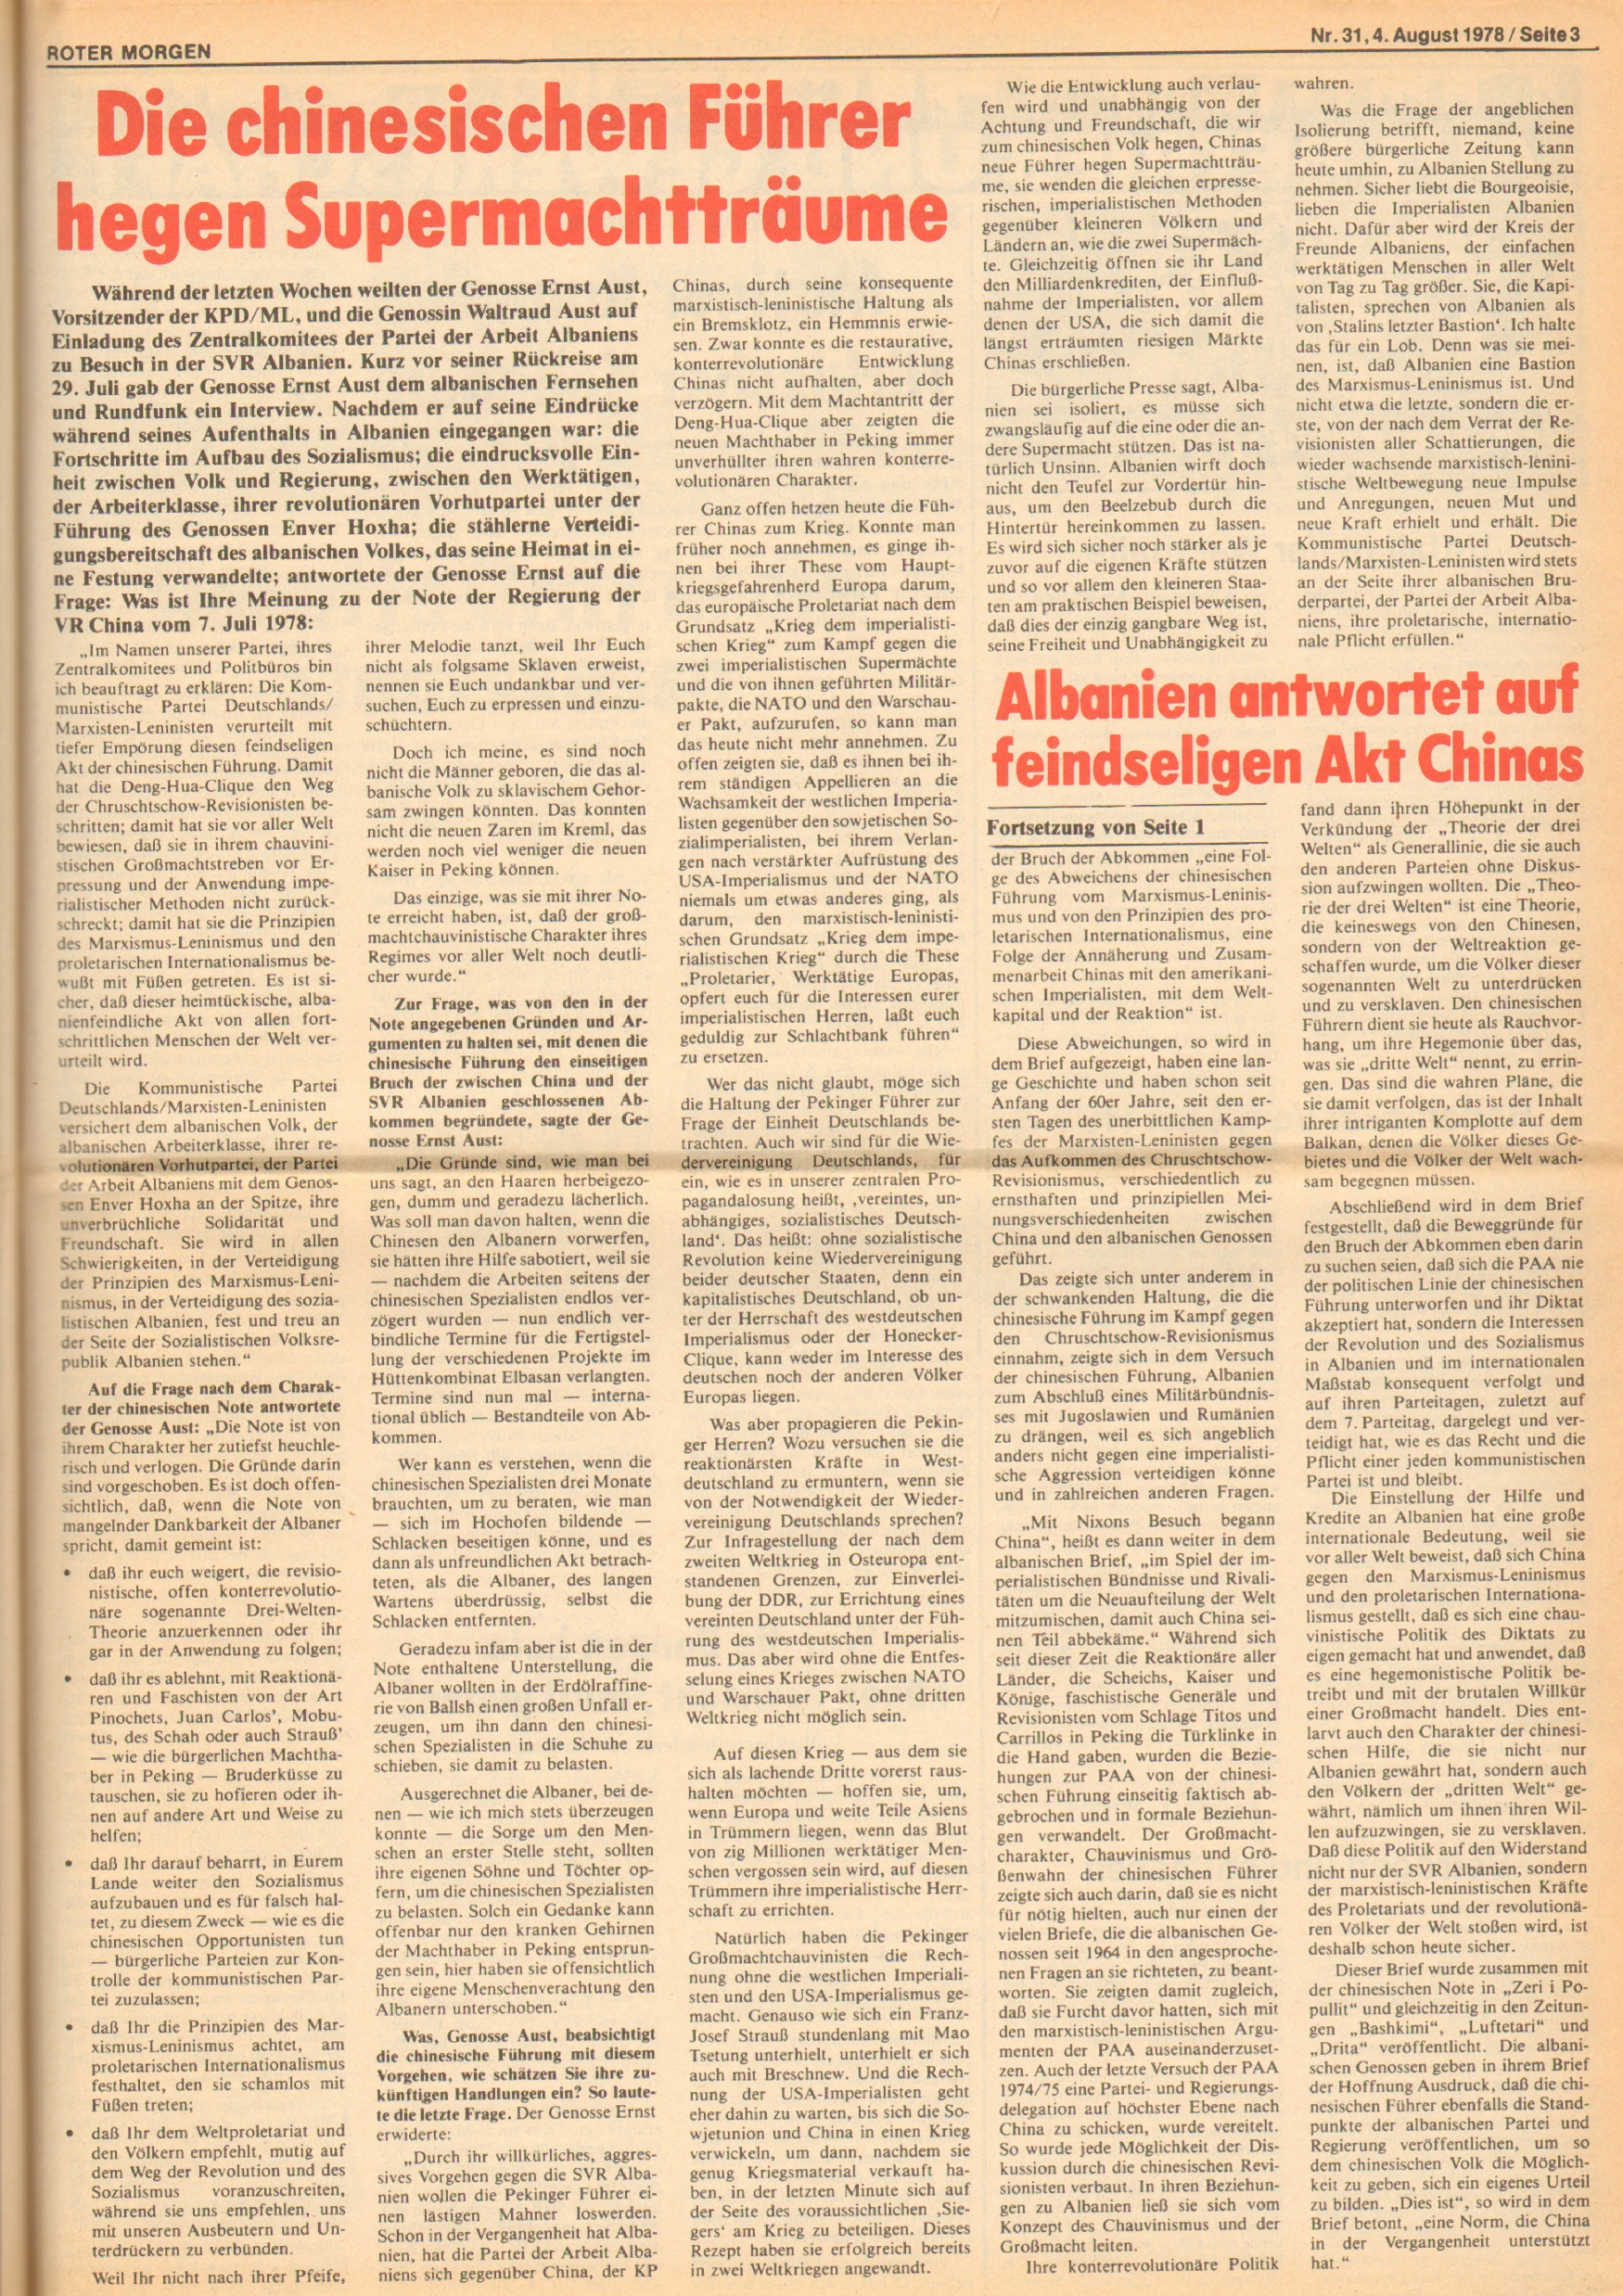 Roter Morgen, 12. Jg., 4. August 1978, Nr. 31, Seite 3